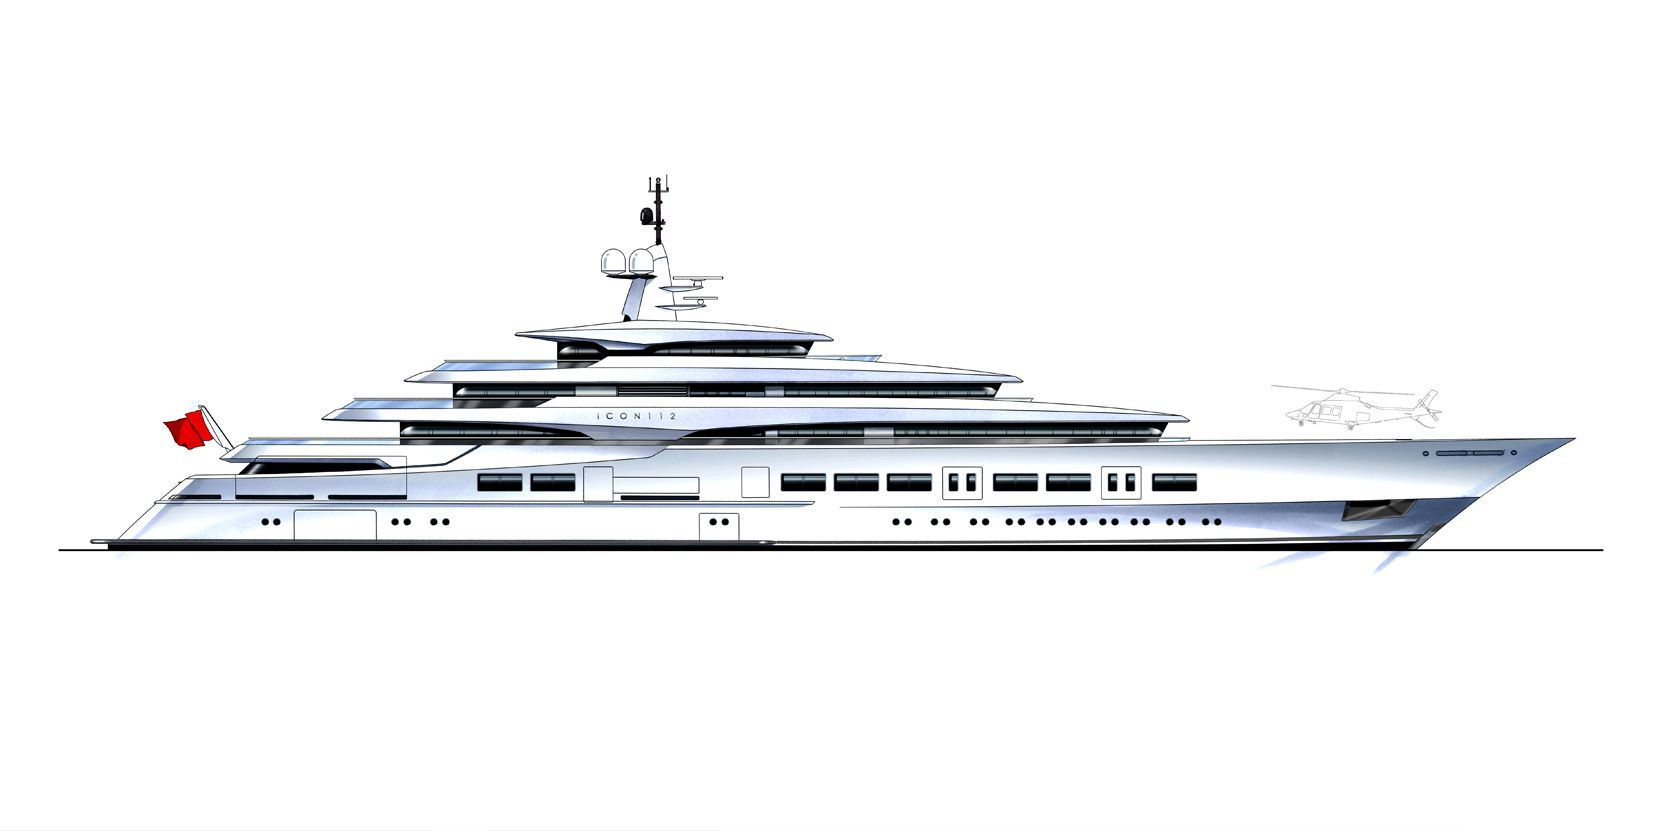 Naval Architect Drawing Of A Superyacht Yacht Design Super